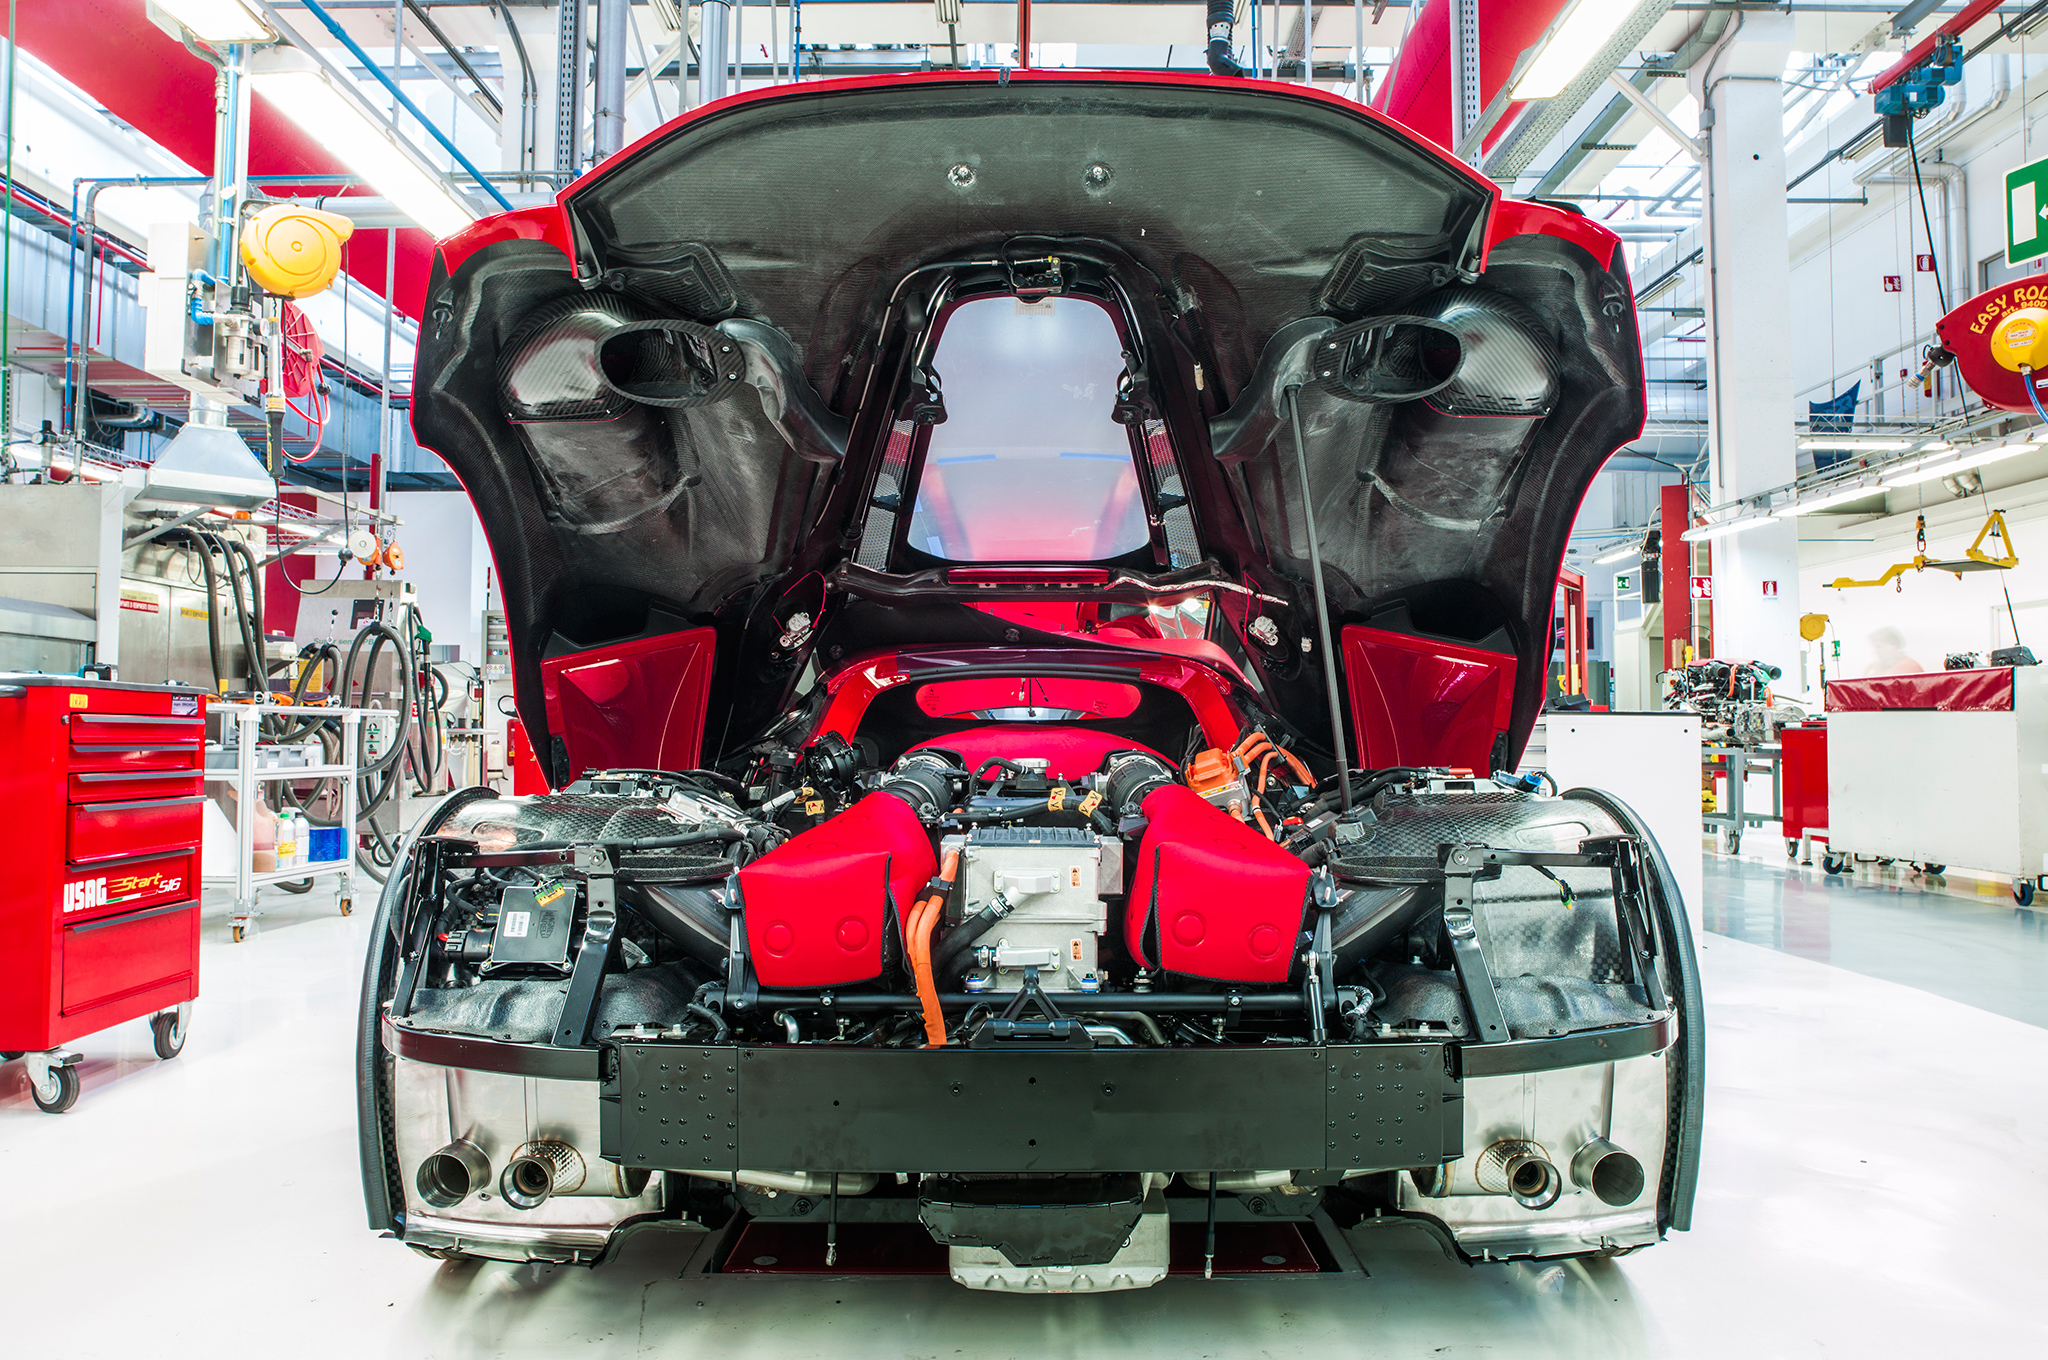 Not a single wasted millimeter, we were told by Ferrari engineers. No kidding: look at the powertrain components packed into the rear of LaFerrari. Silver-colored electric inverters (nestled between pieces of protective red fabric) lead to the heart of the beast, the 6.3-liter V-12.